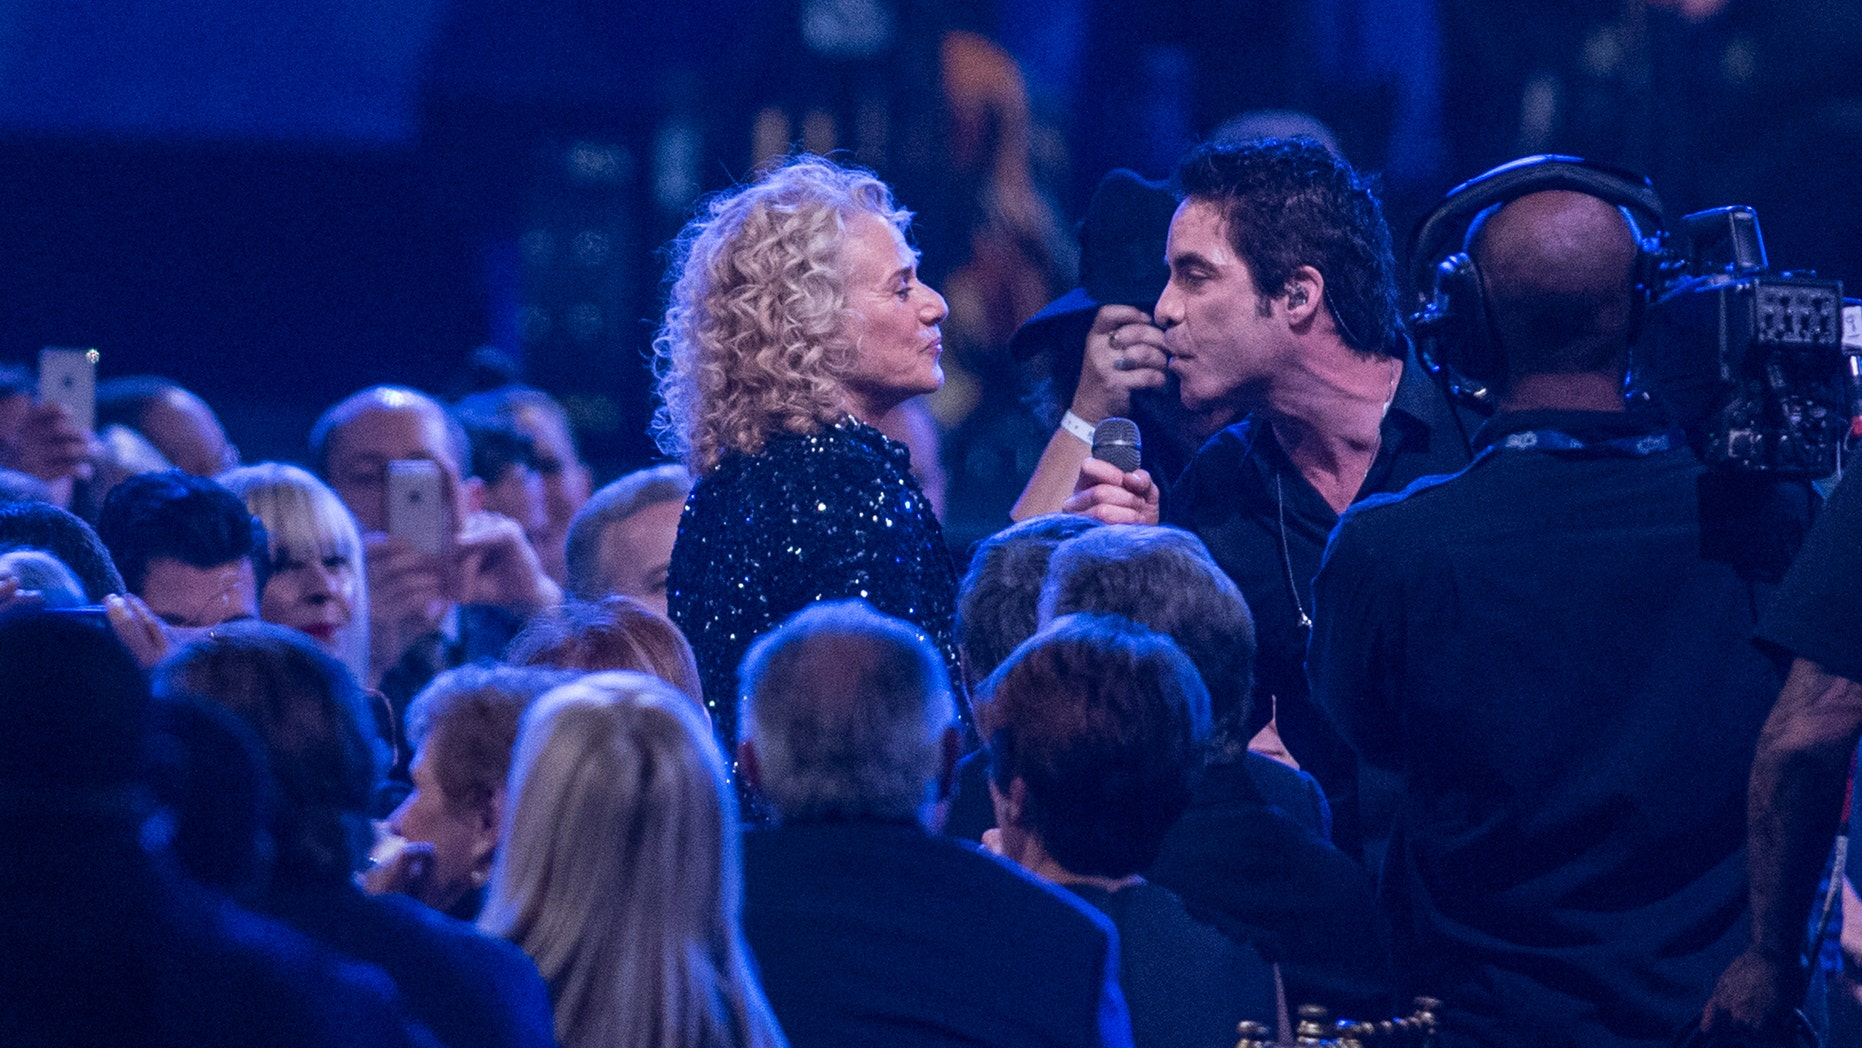 Jan. 24 2014. Pat Monahan of Train sings to Carole King at the MusiCares 2014 Person of the Year Tribute in Los Angeles.